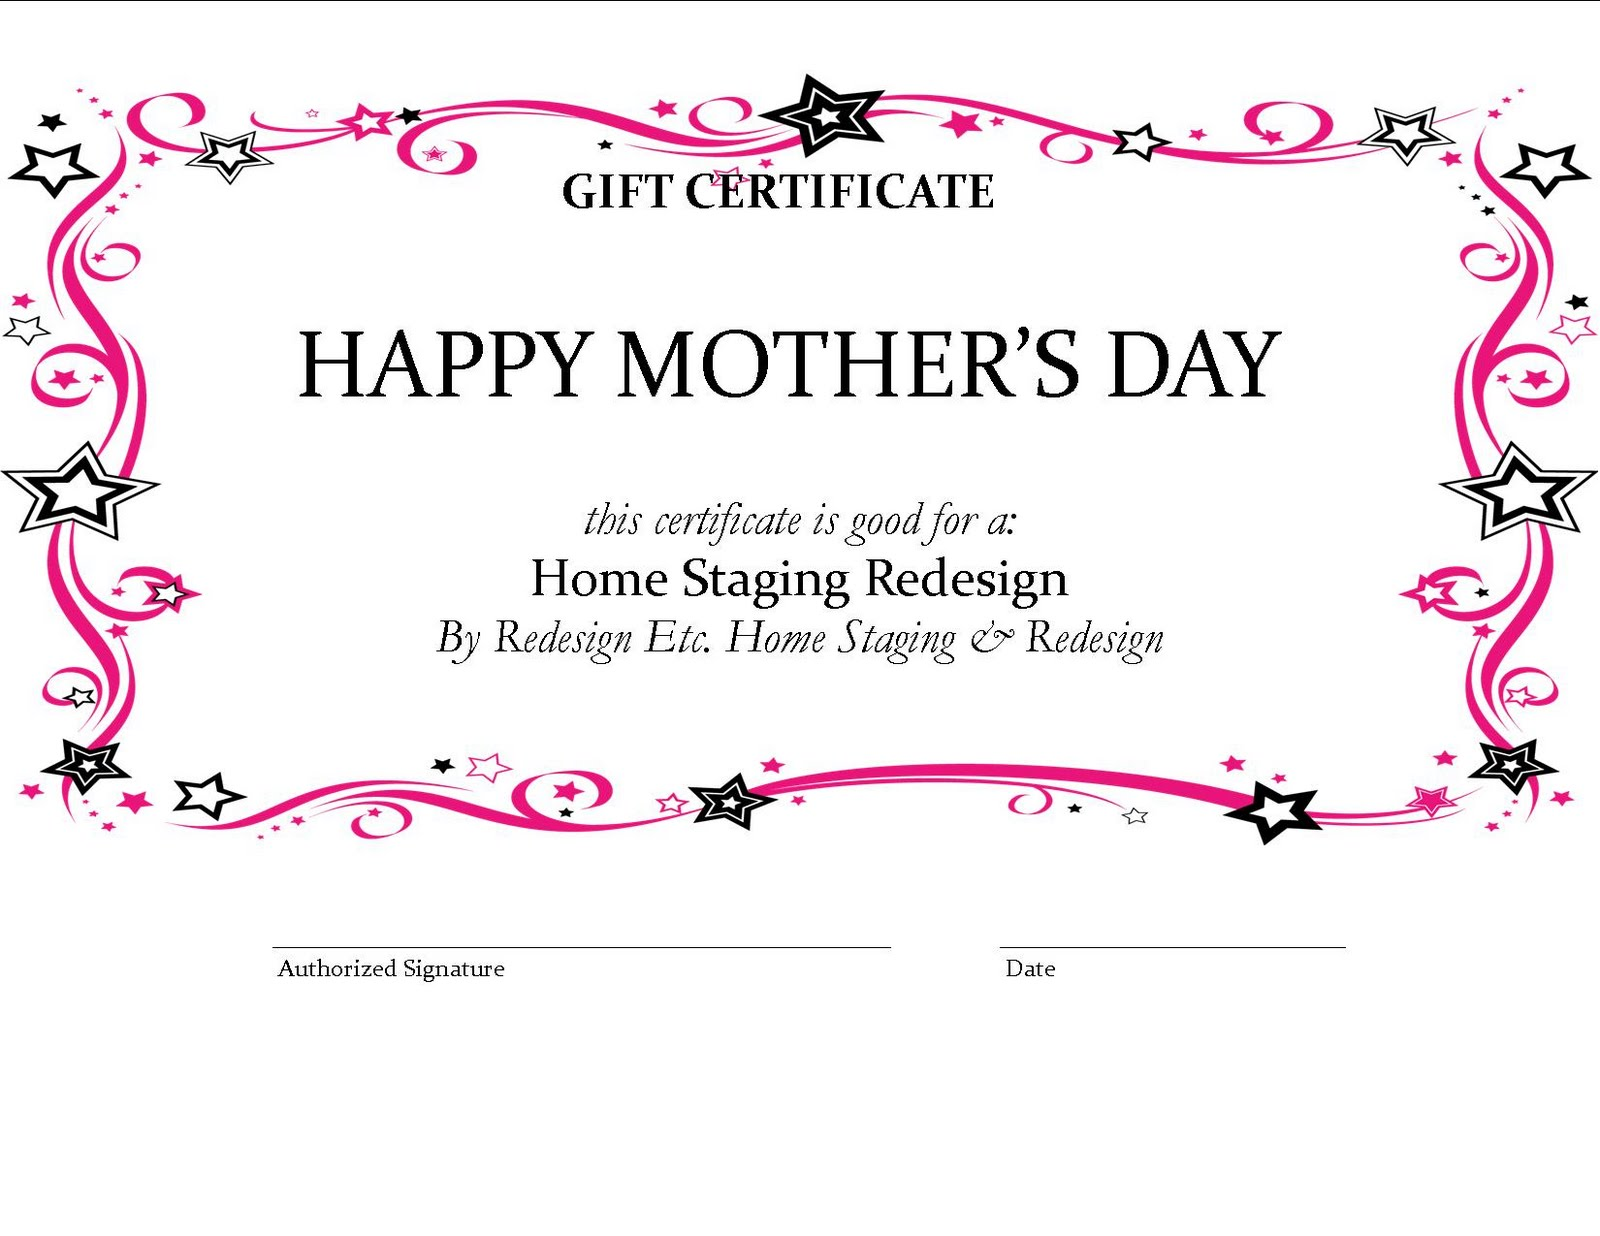 Home Staging Blog Of Houston By Redesign Etc Home Staging Mother%27s Day Gift  Certificate Home Staging Mothers Day Gifthtml Gift Certificate Format  Gift Certificate Format